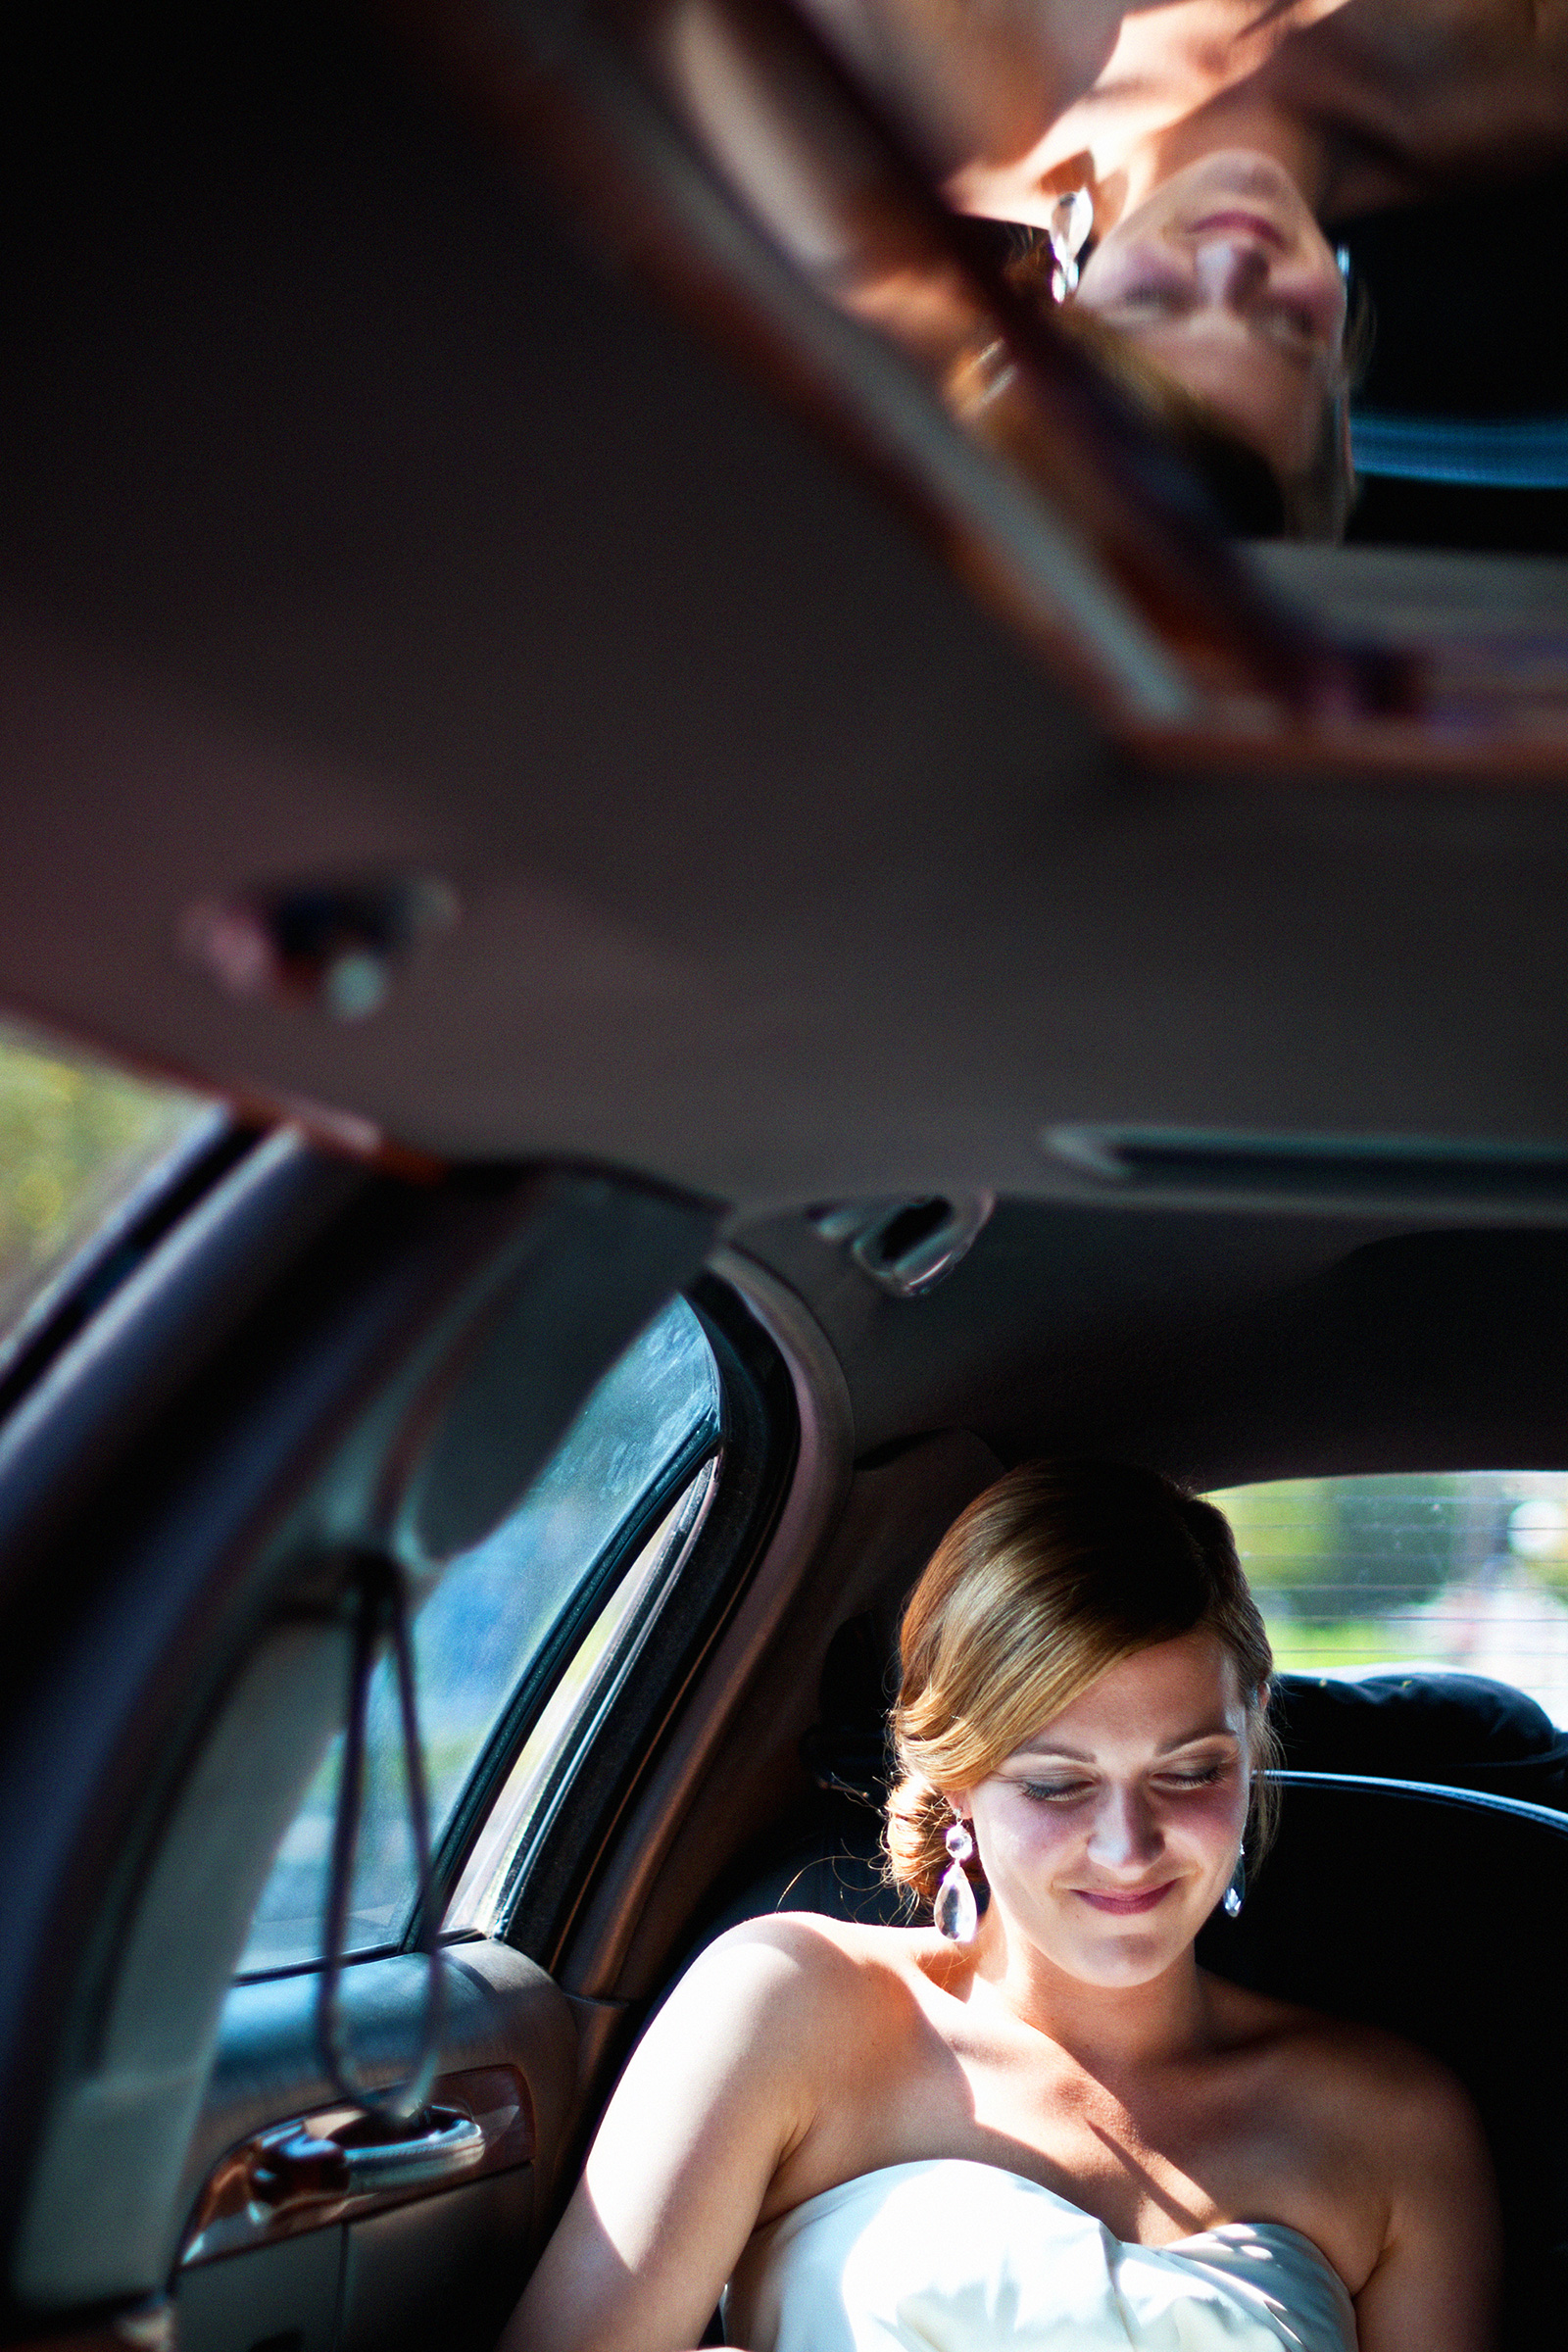 Bride in limo reflected - photo by Bradley Hanson Photography